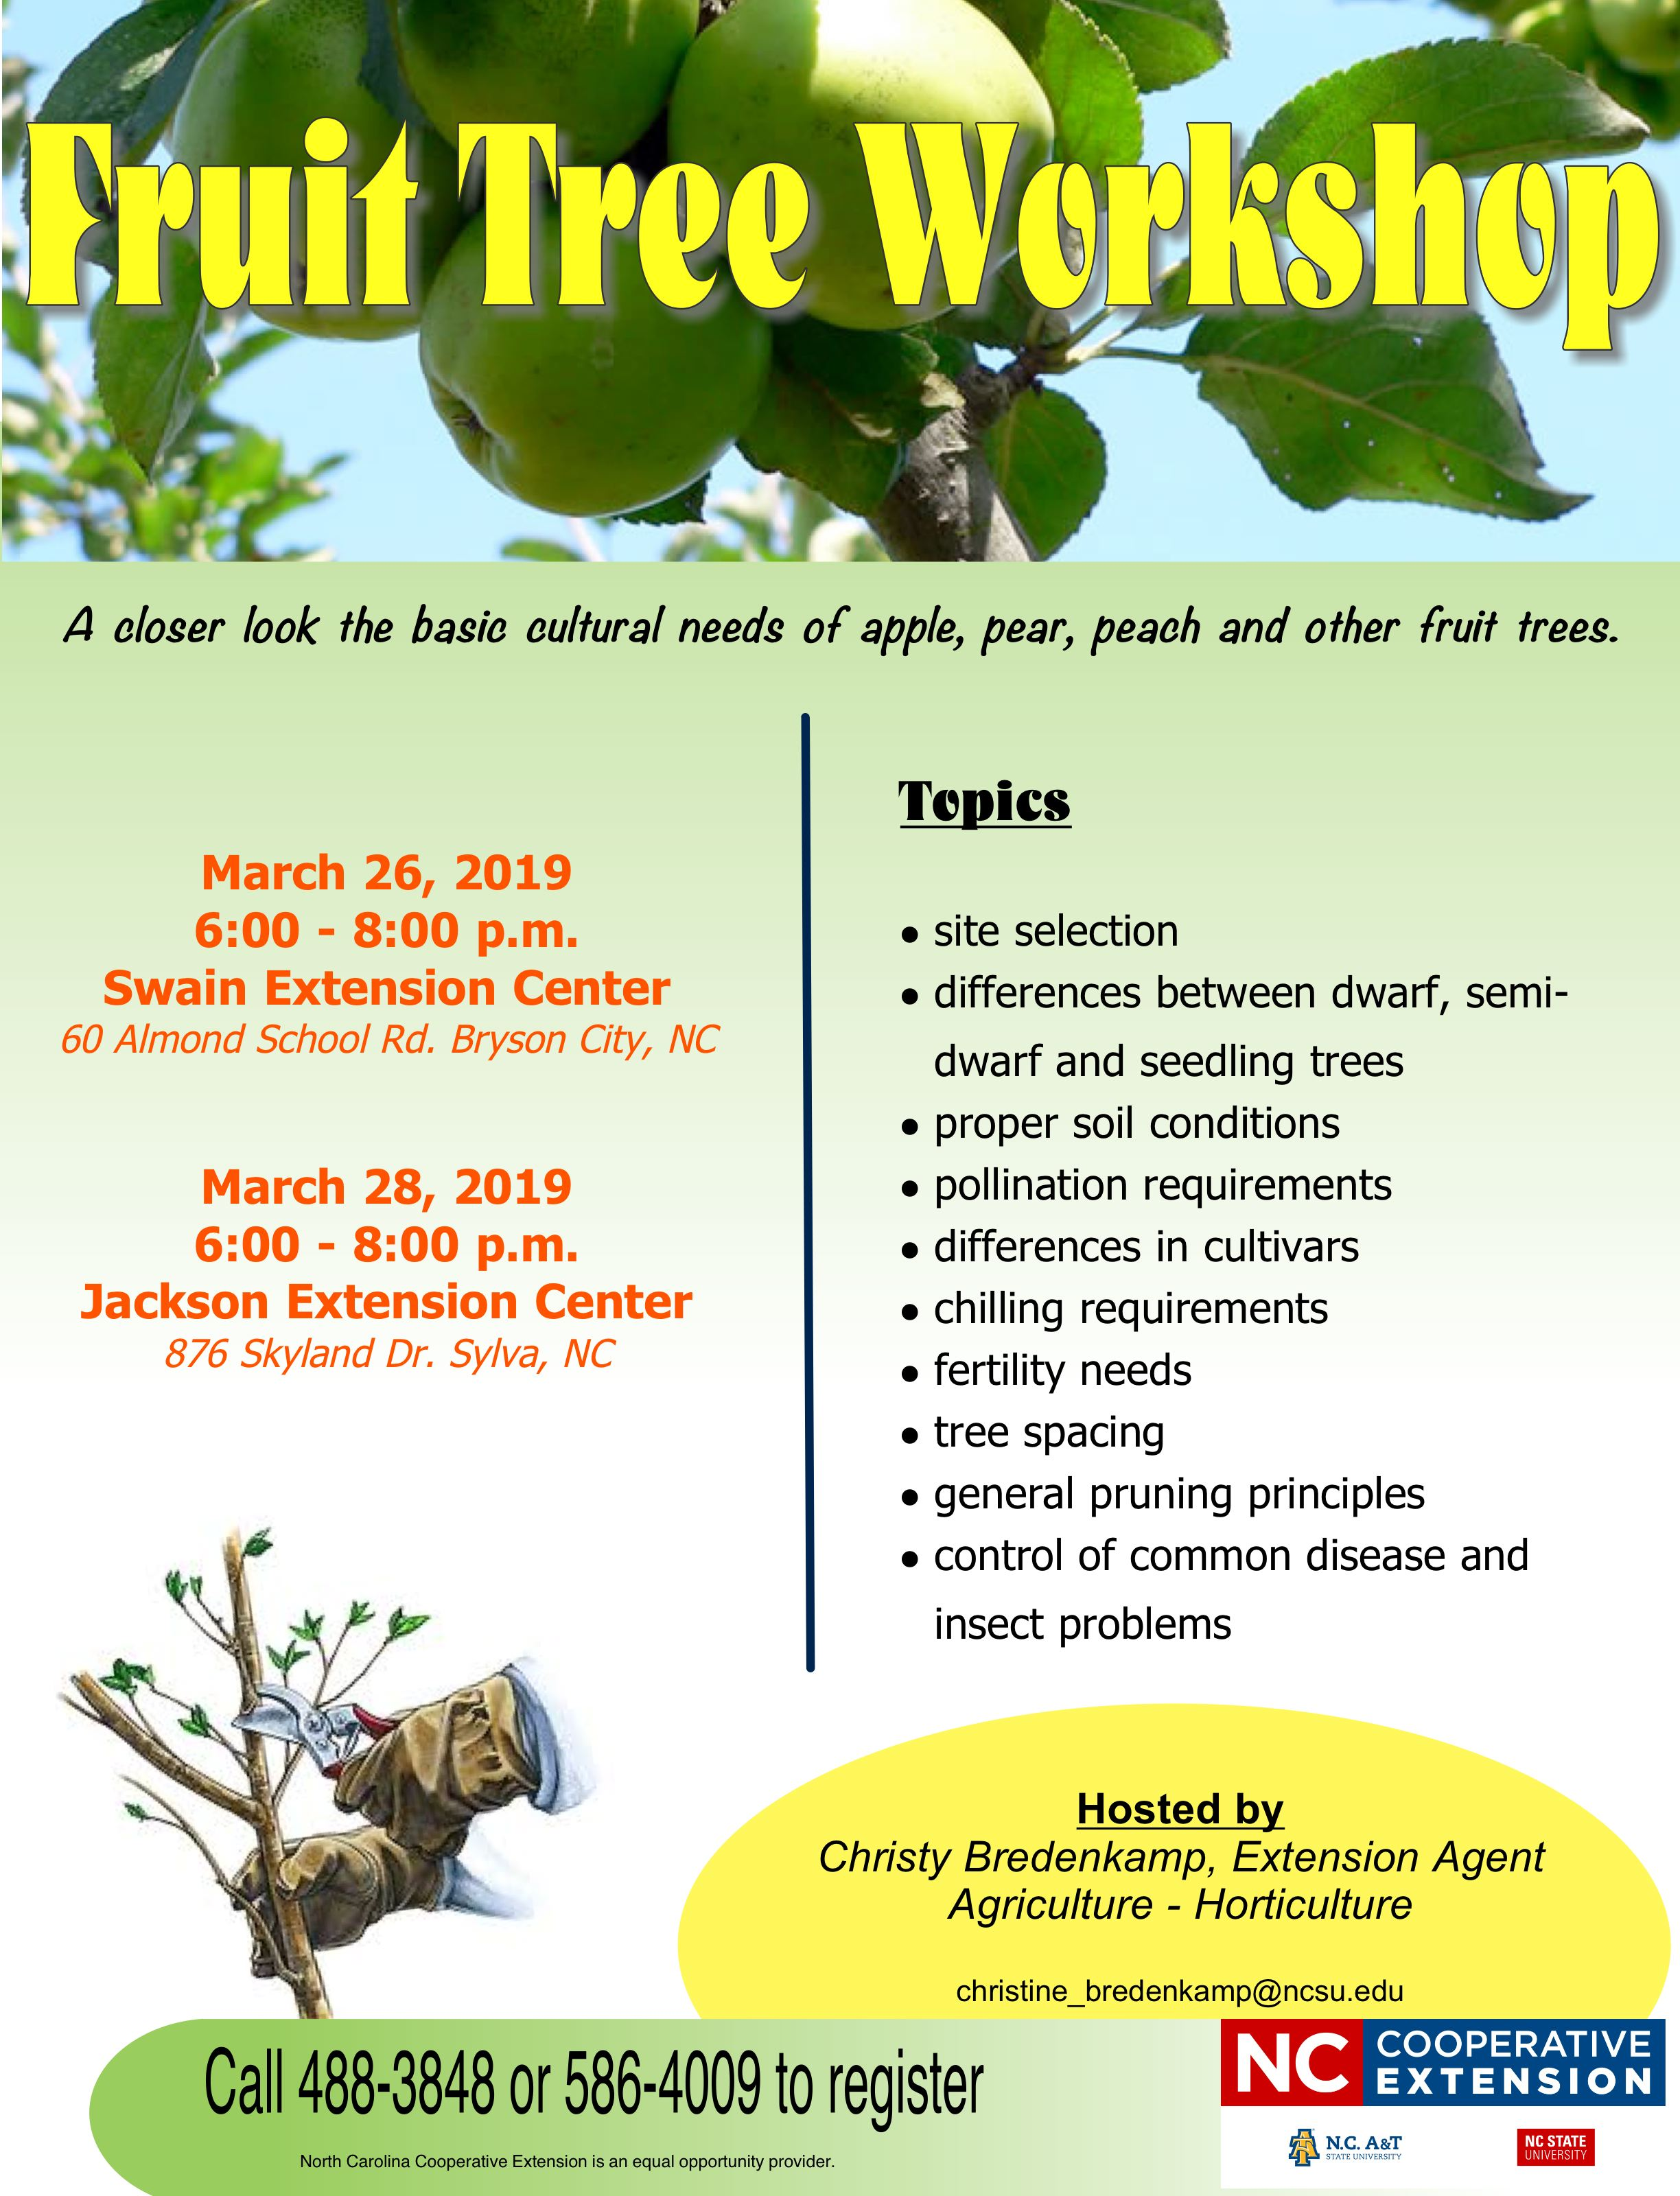 Fruit Tree Workshop flyer image